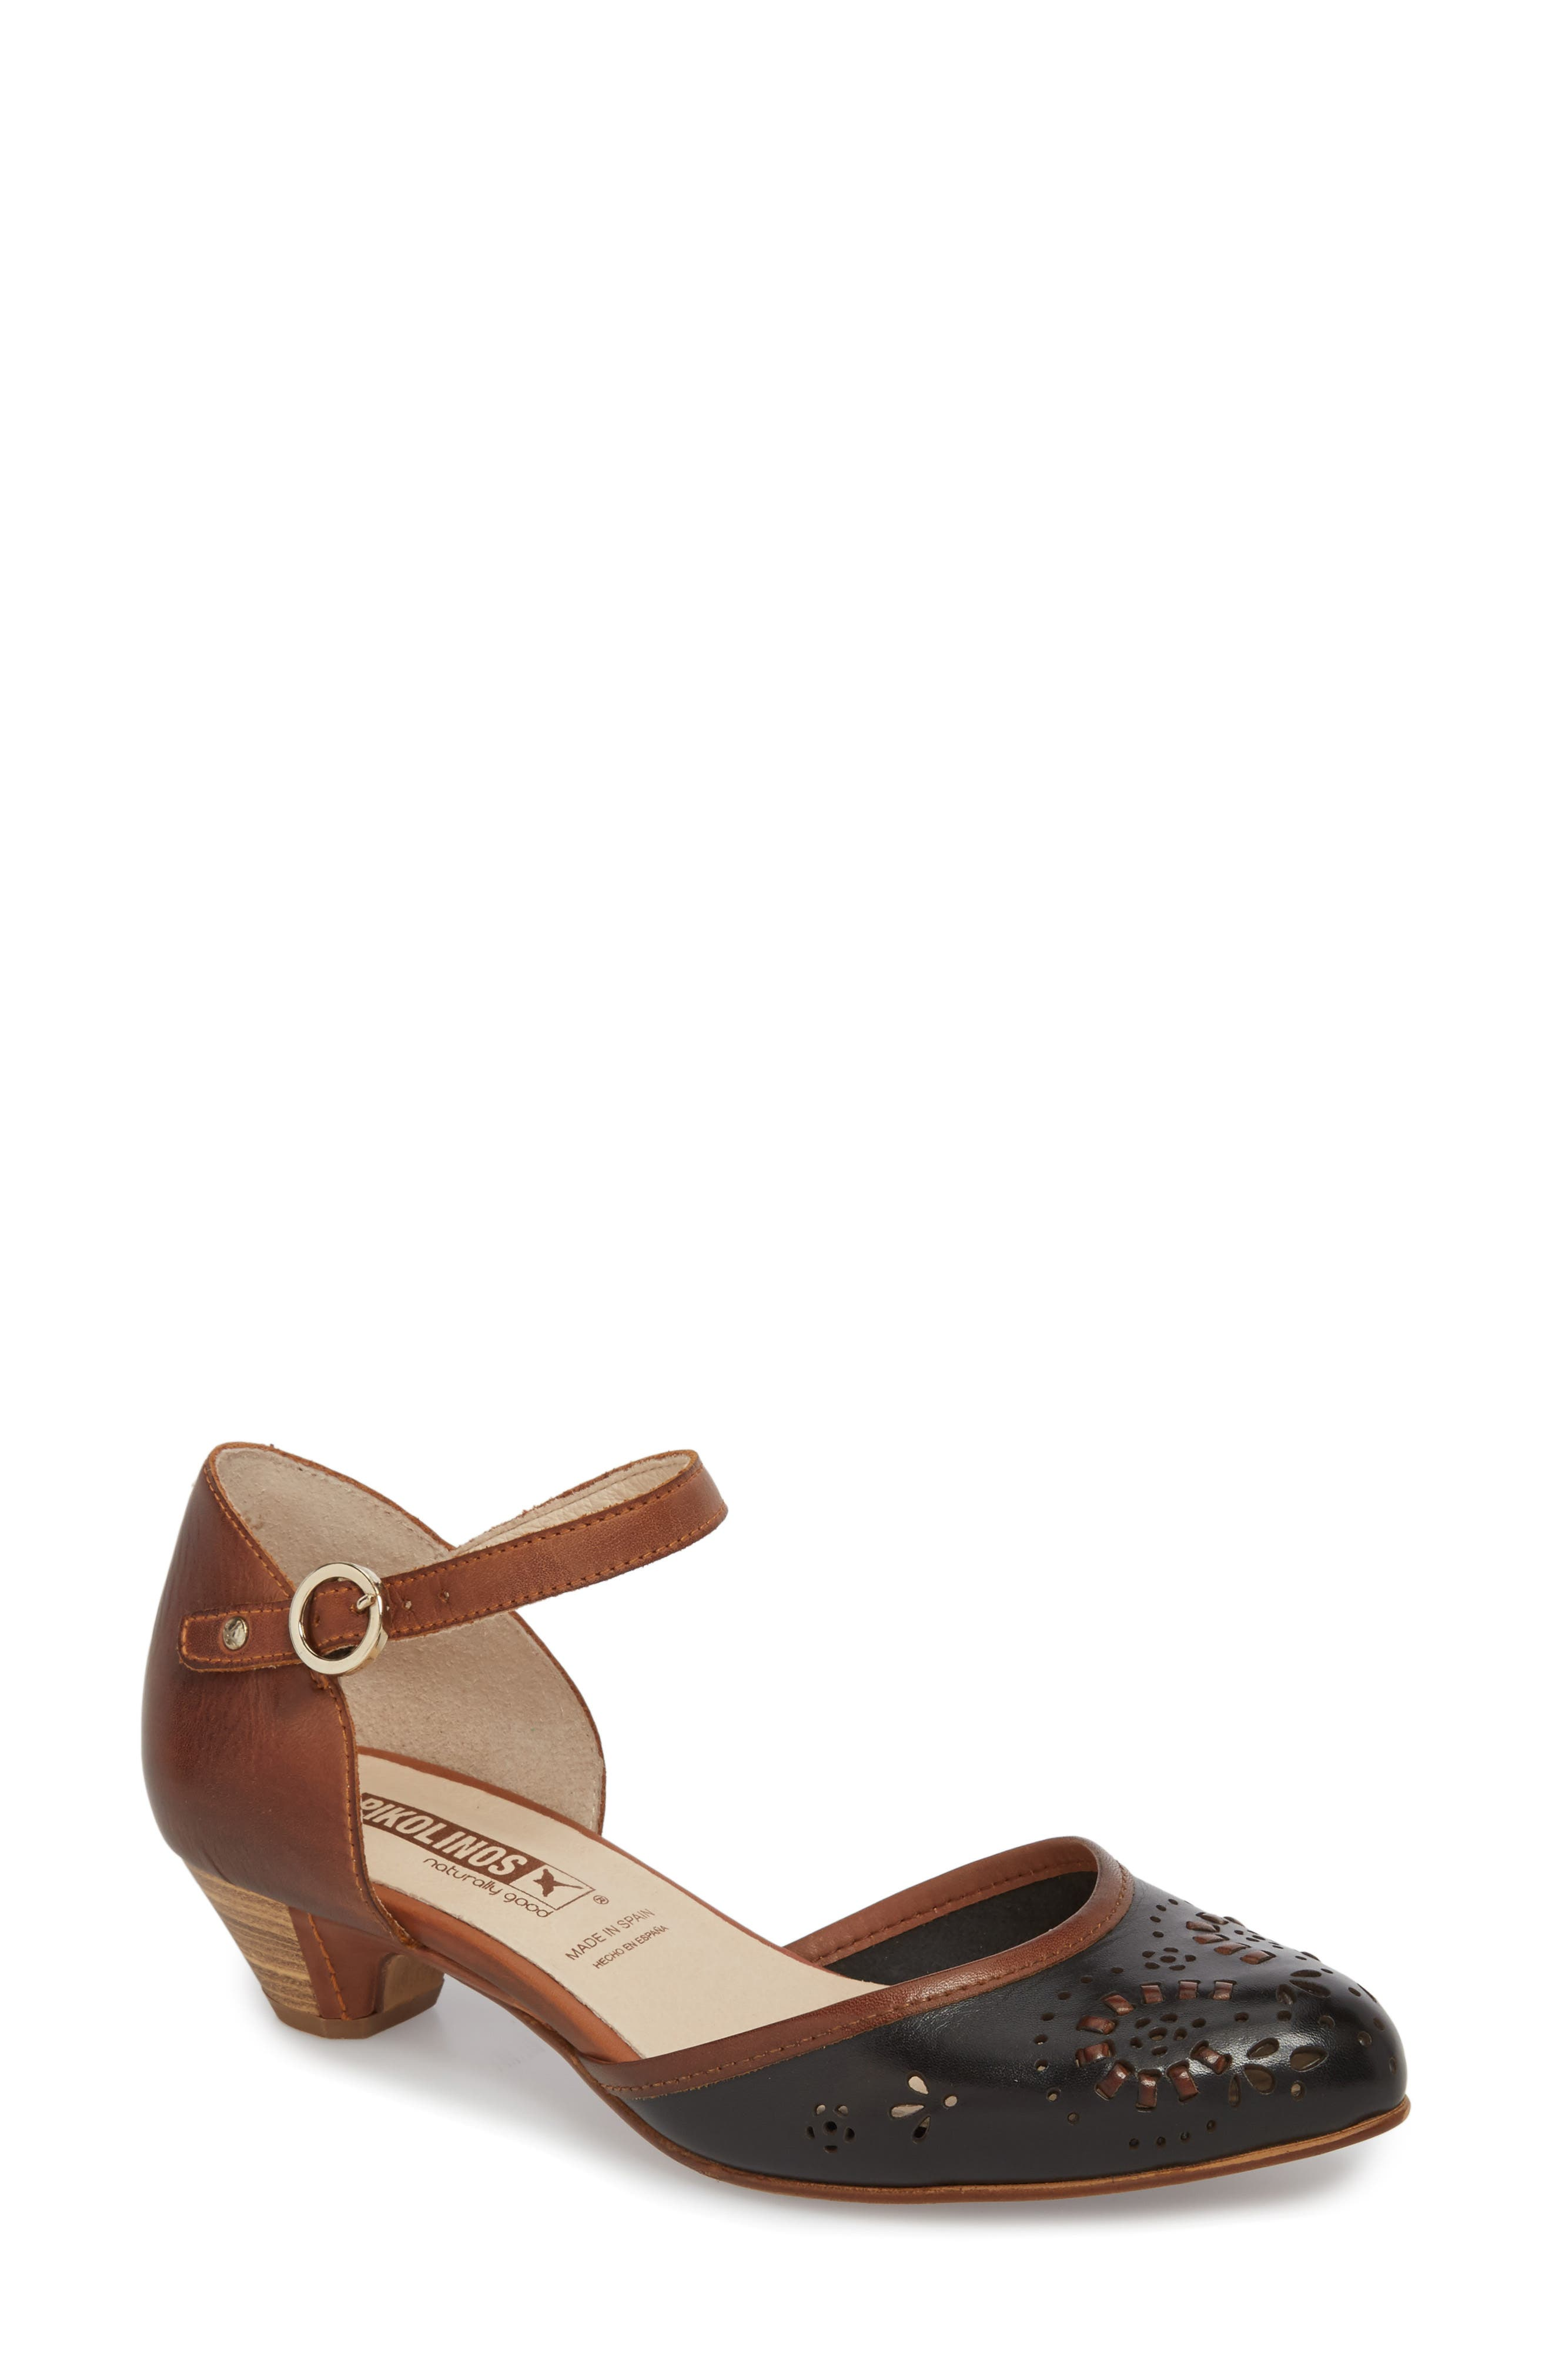 Elba Mary Jane Pump,                         Main,                         color, BLACK LEATHER